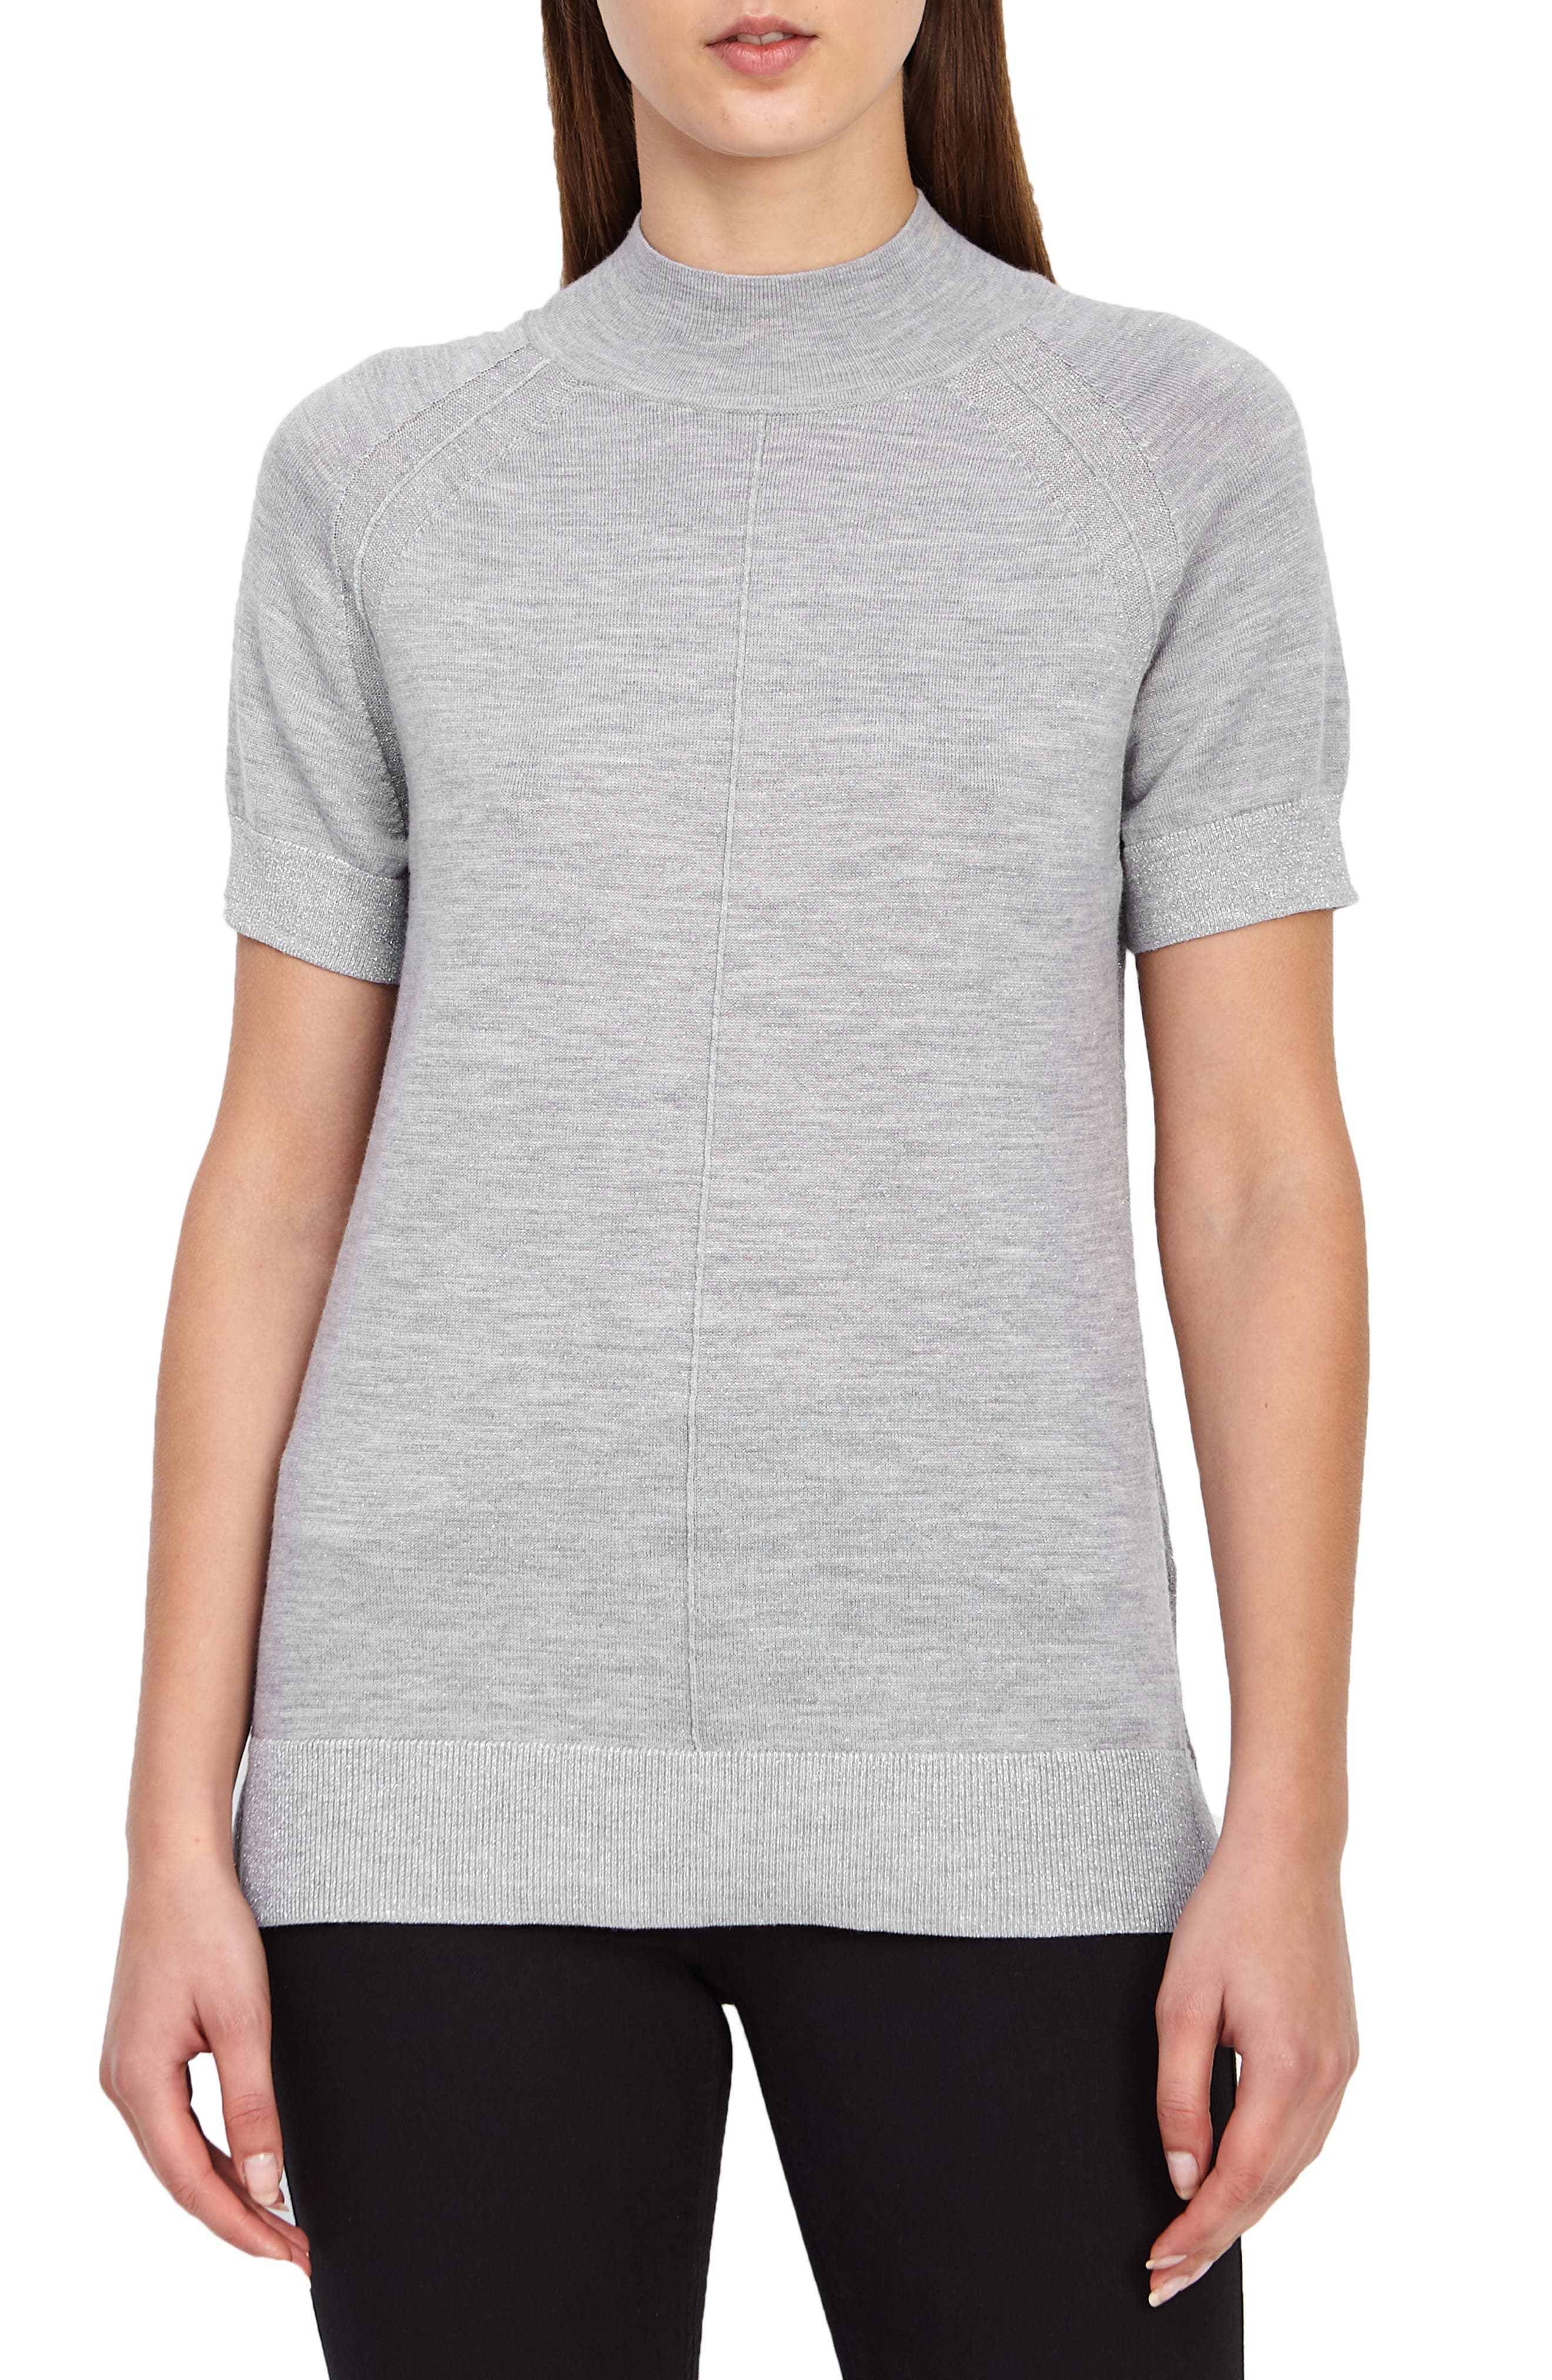 REISS Wool Blend Metallic Short Sleeve Sweater in Grey